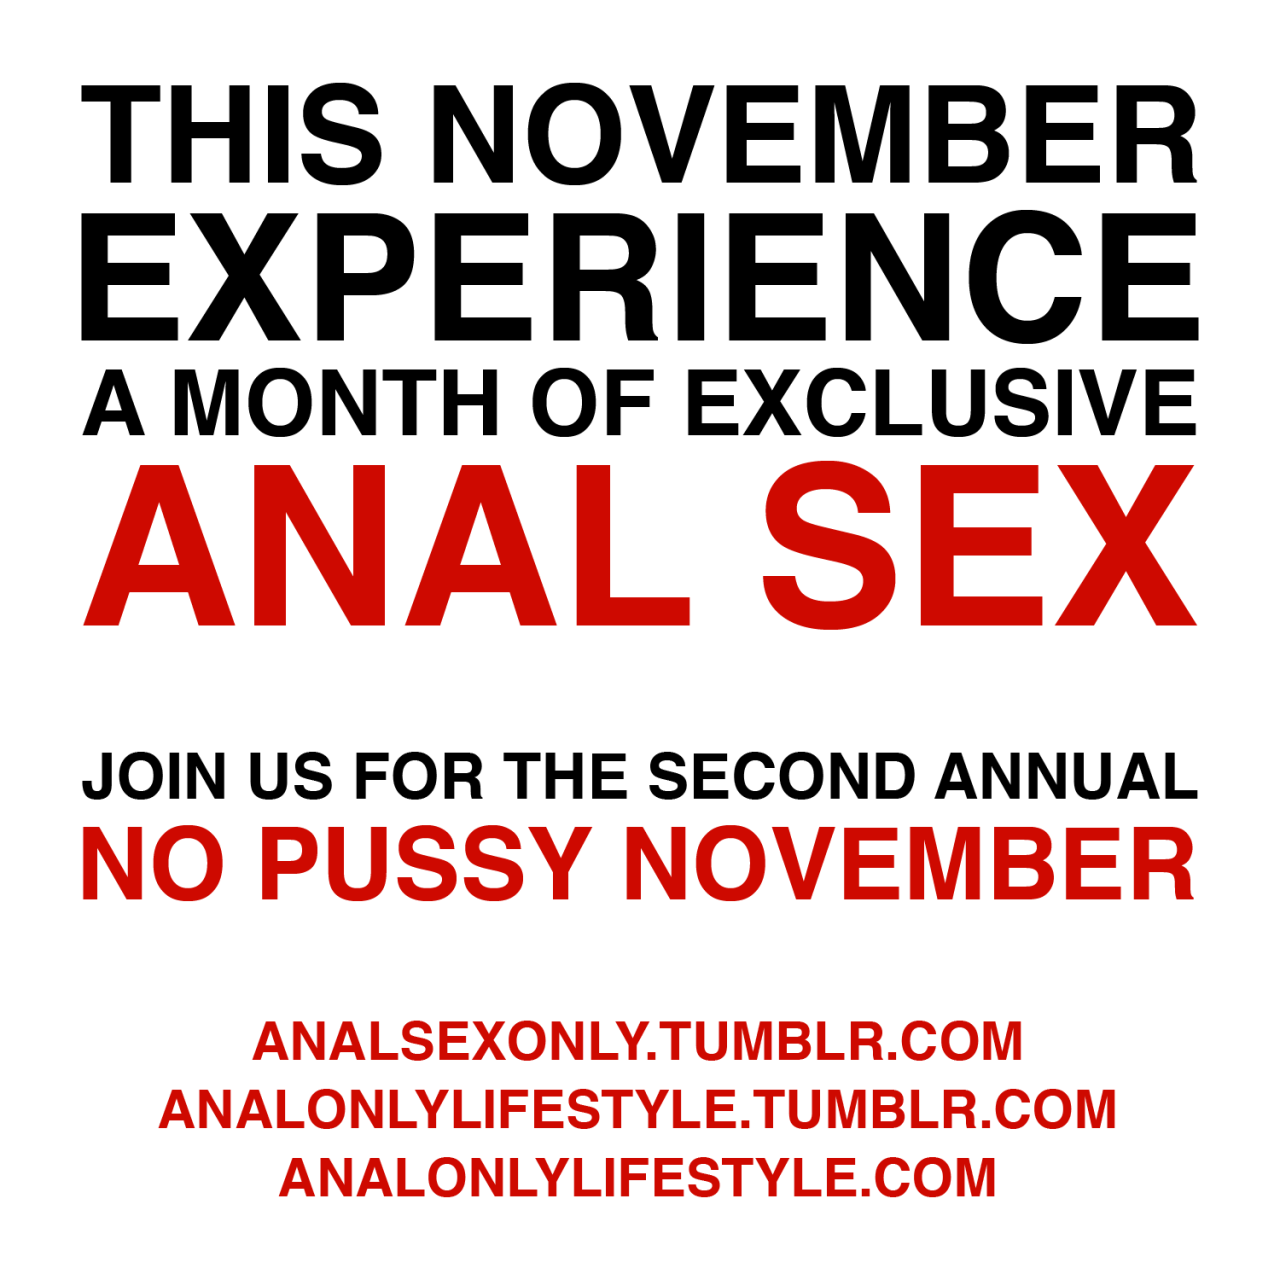 This November Experience A Month of Exclusive Anal Sex - Join Us In The Second Annual No Pussy November